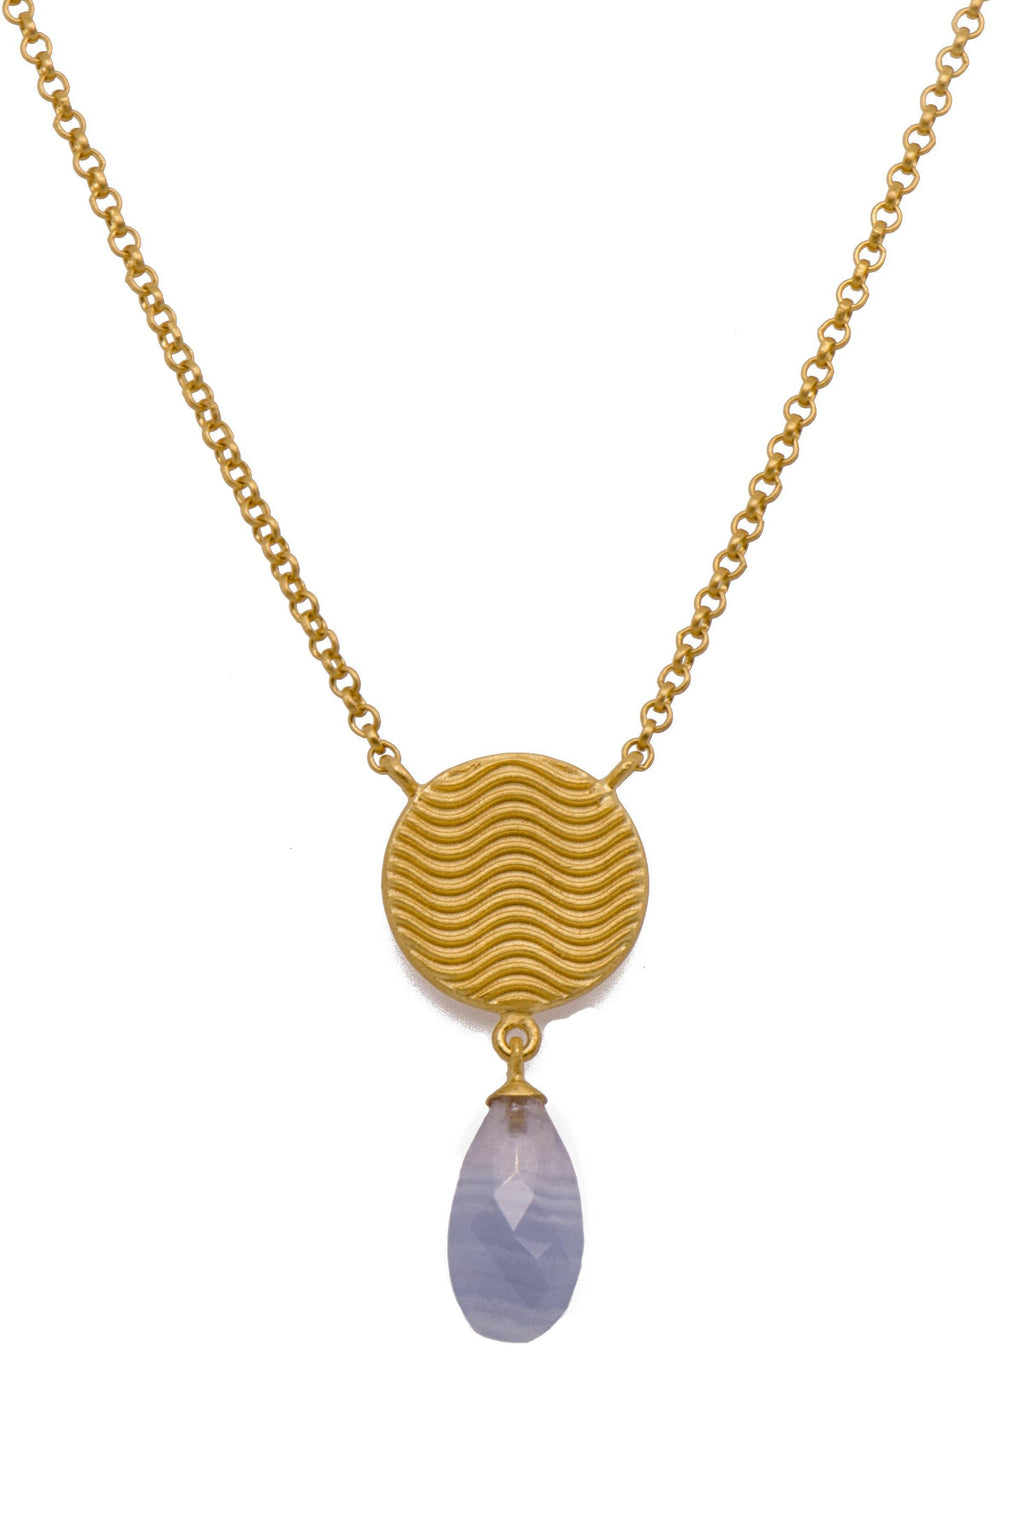 SRN2VCS SERENITY FACETED STRIPED CHALCEDONY TEARDROP NECKLACE 24K GOLD VERMEIL